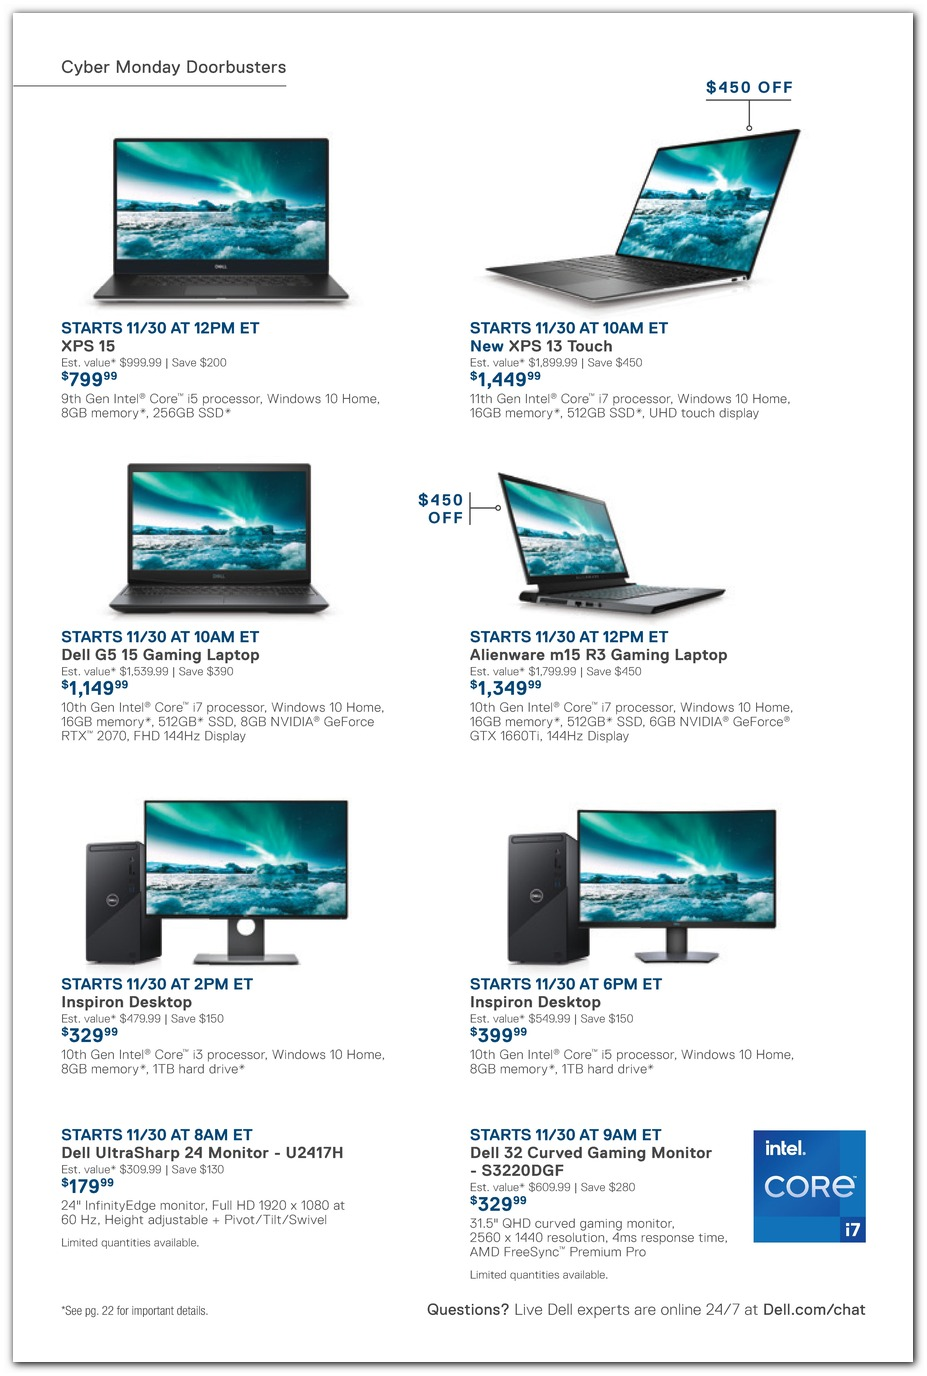 Cyber Monday Laptops / Desktops